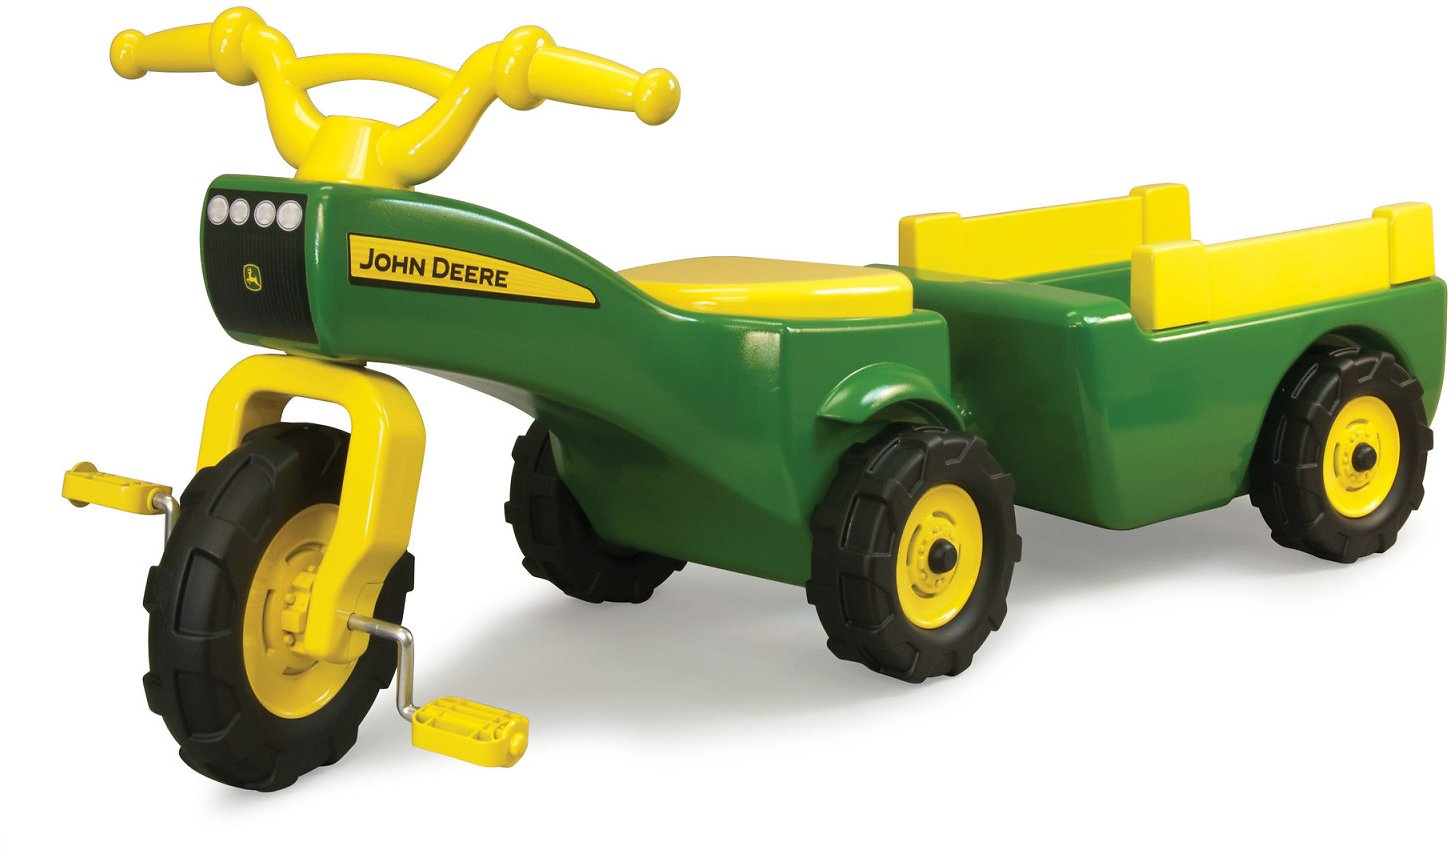 John Deere Pedal Tractor And Wagon, Kids Ride On Tractor Tricycle, Green + Yellow